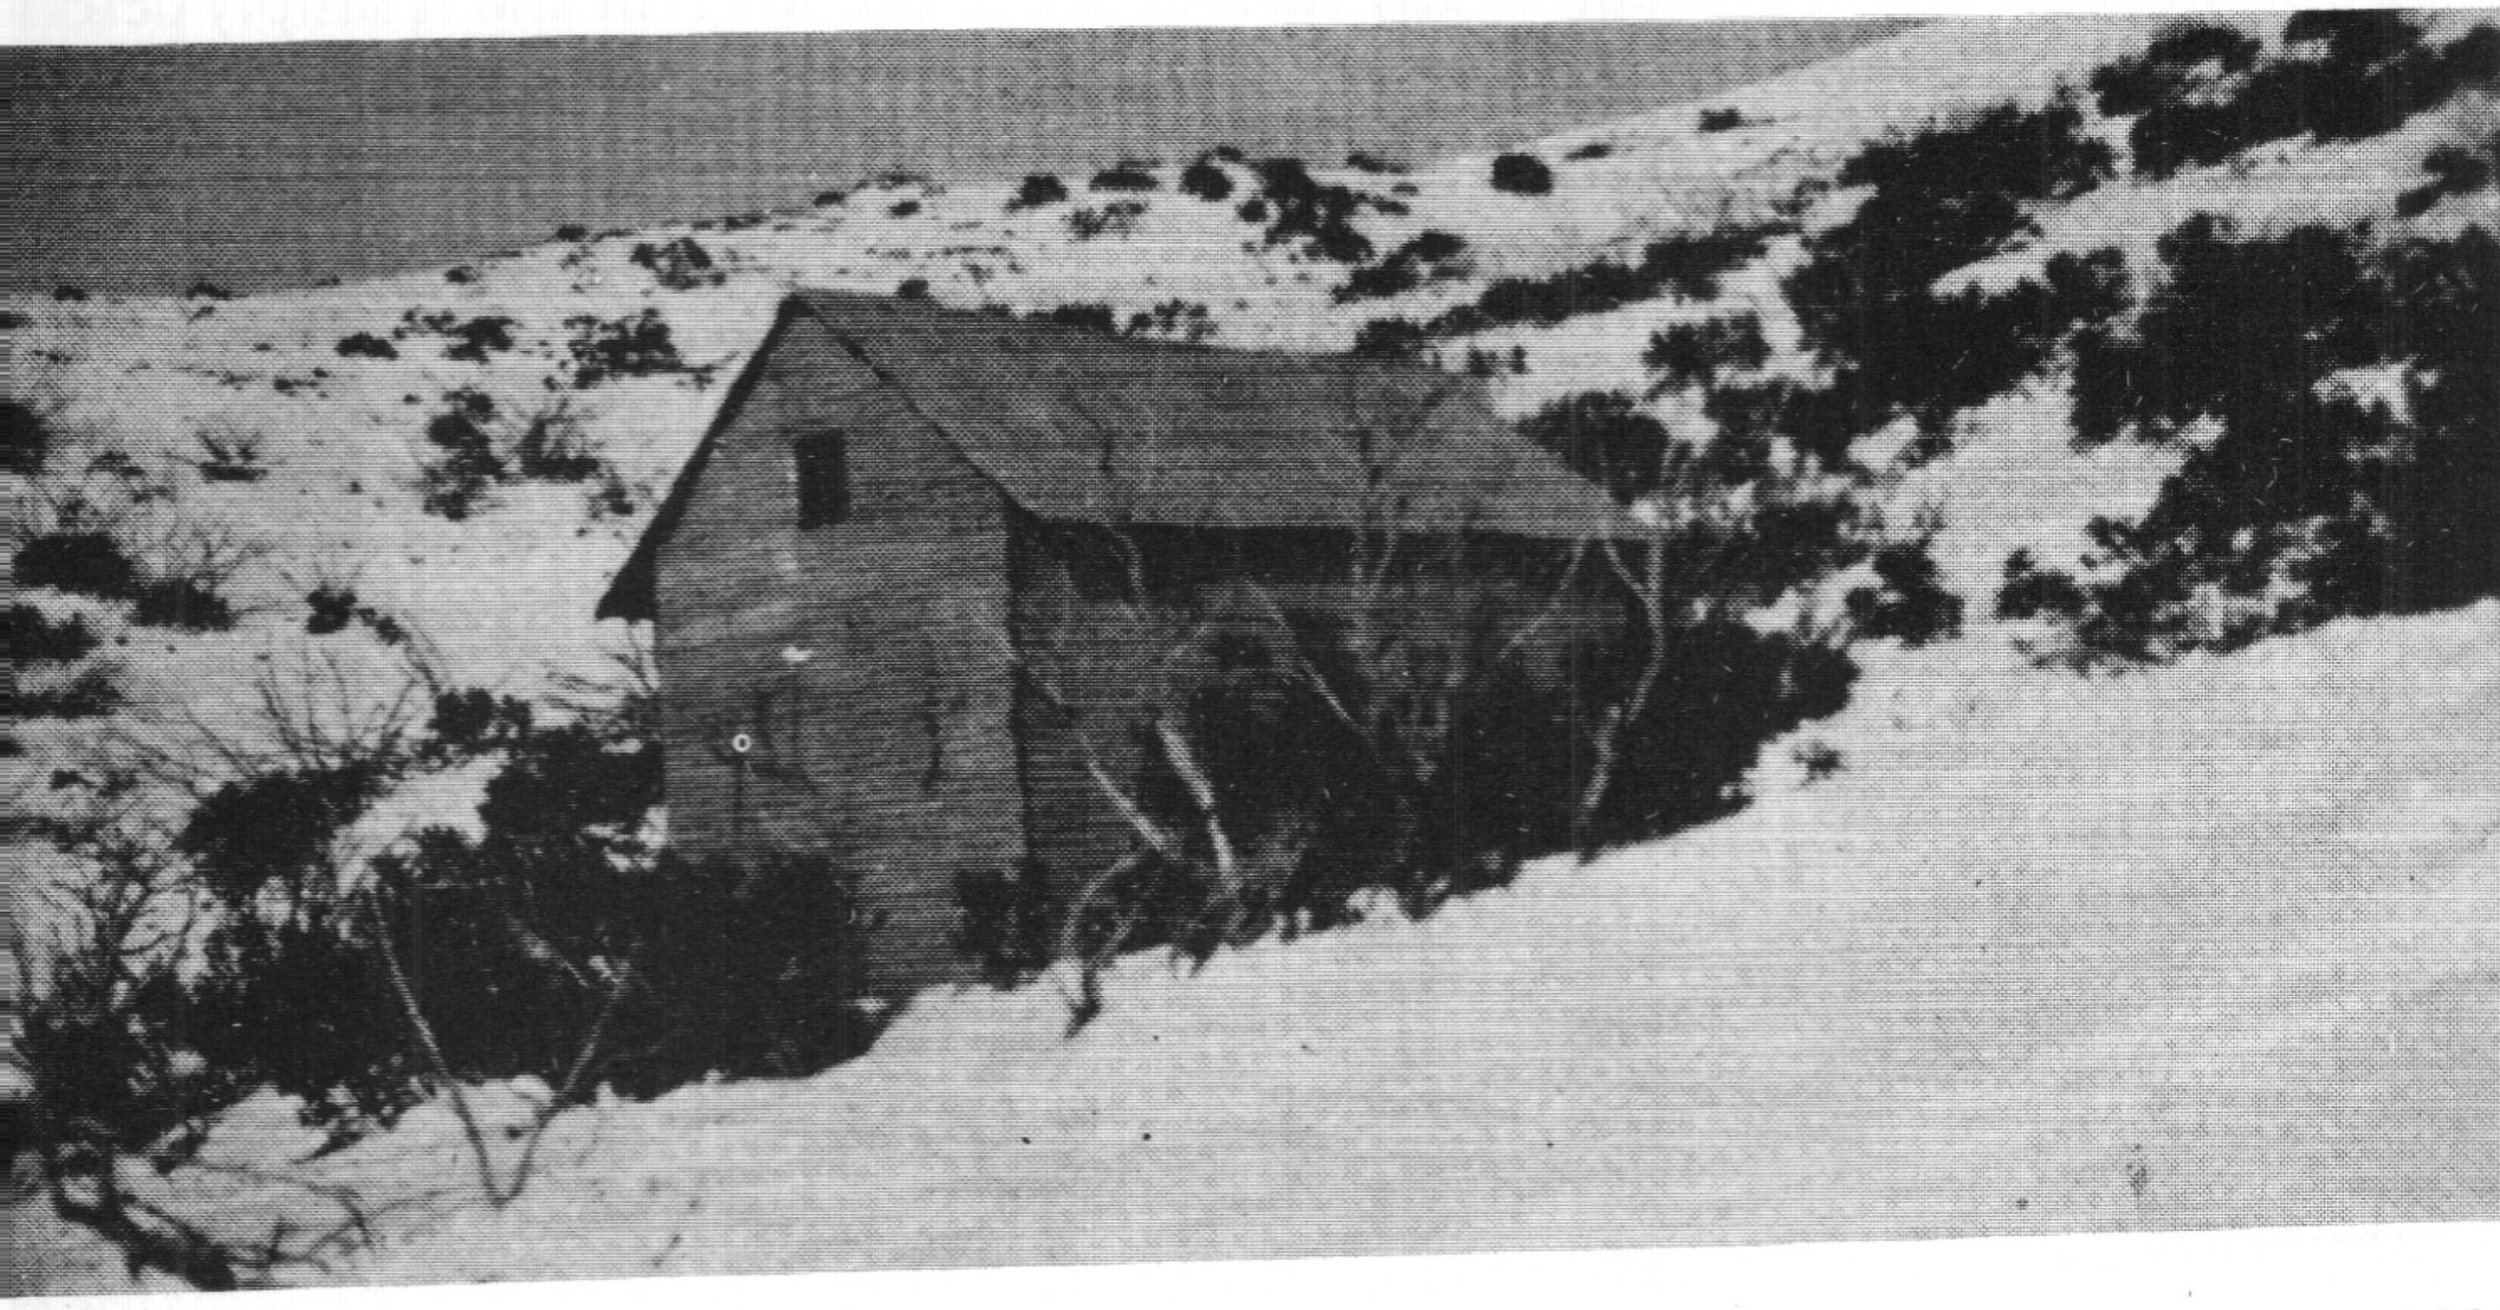 The SCV Boggy Creek cabin built in 1934. This was the equal second ski club lodge in Victoria after the University Ski Club cabin on Mt Donna Buang.